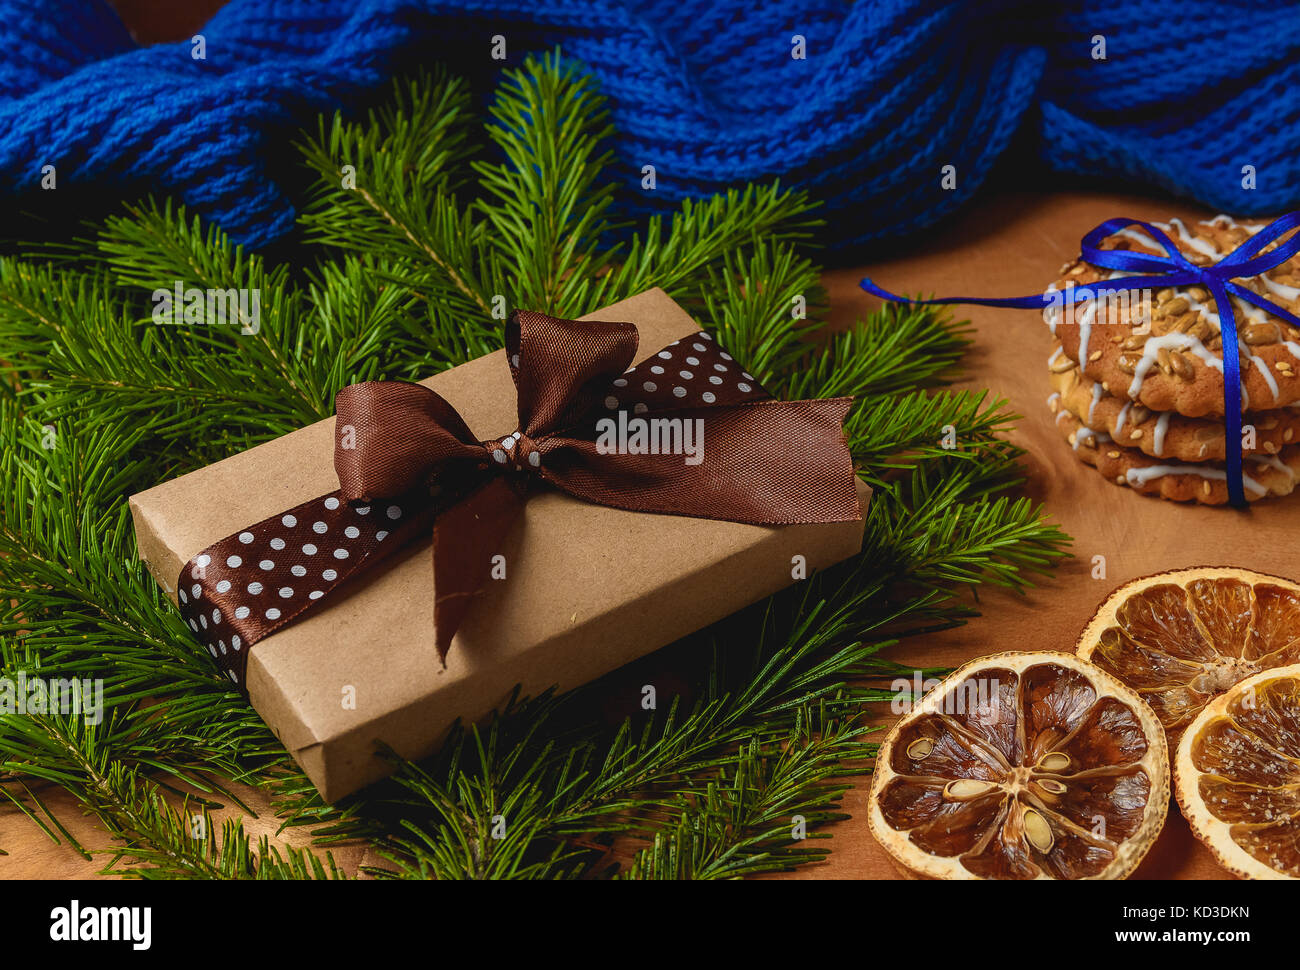 Christmas gift or present box wrapped in kraft paper on christmas decoration Stock Photo